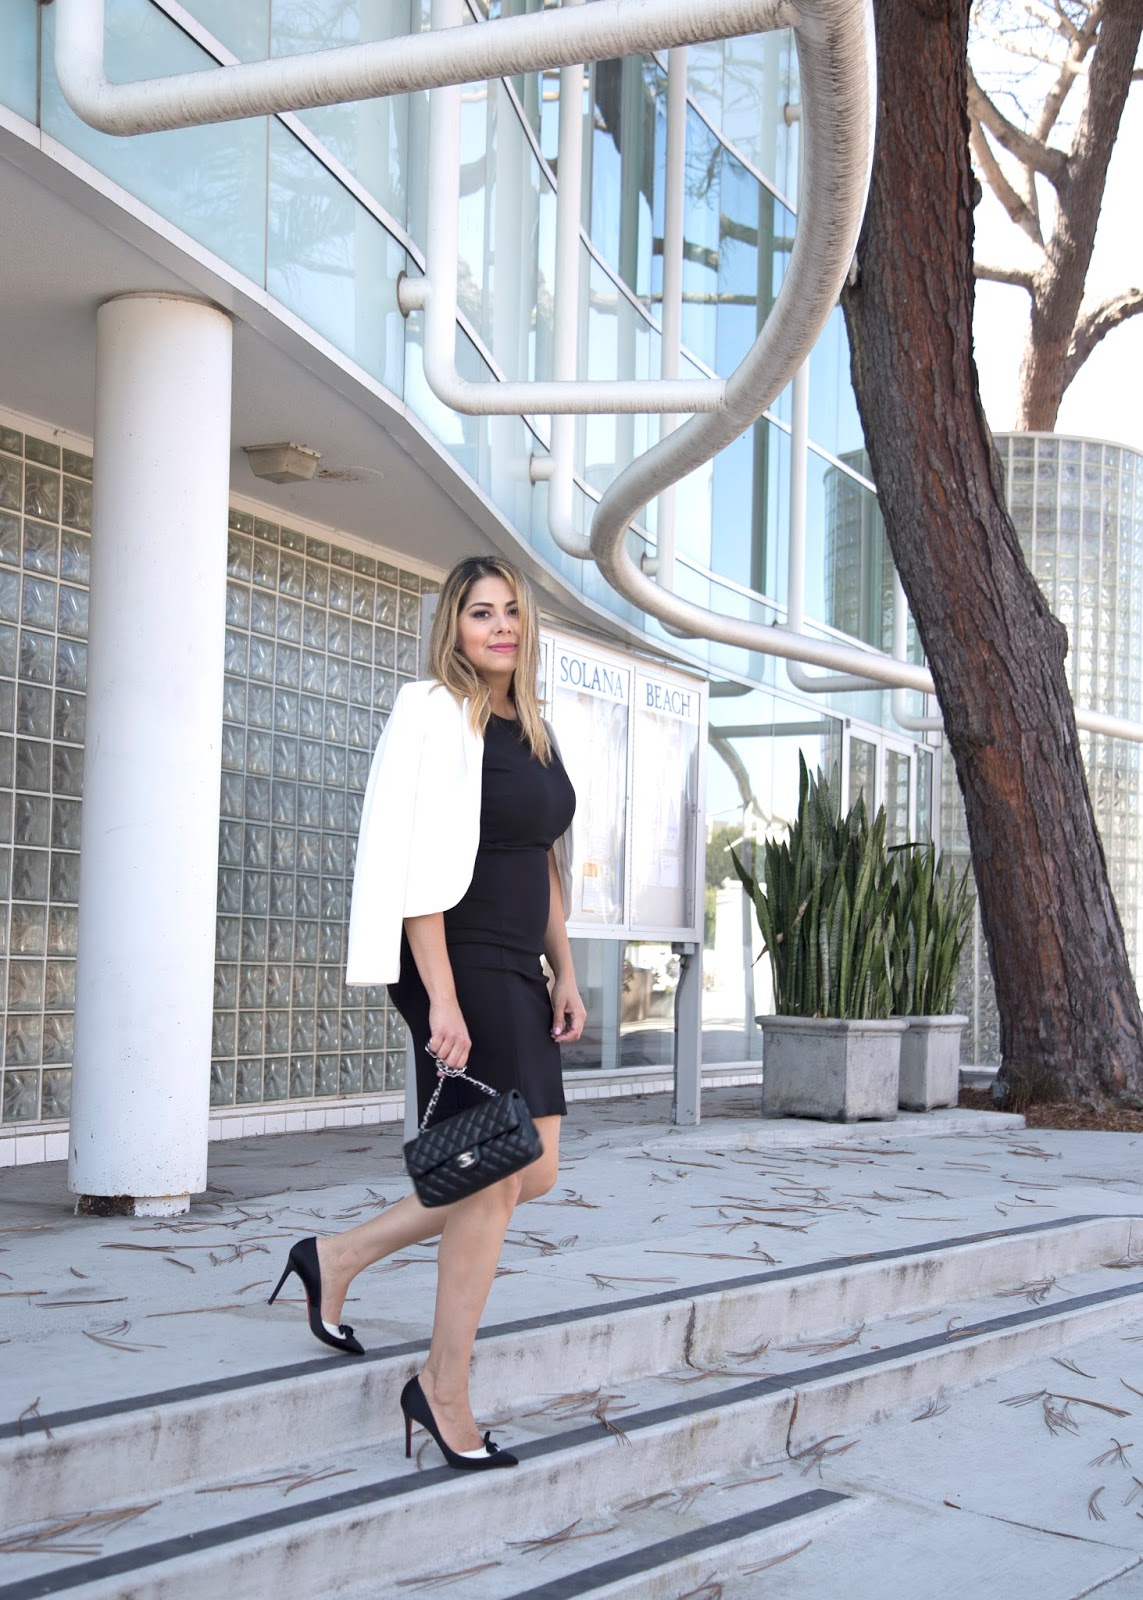 how to wear louboutins in the work place, professional chic outfit, elie tahari black dress, chanel black and silver flap bag